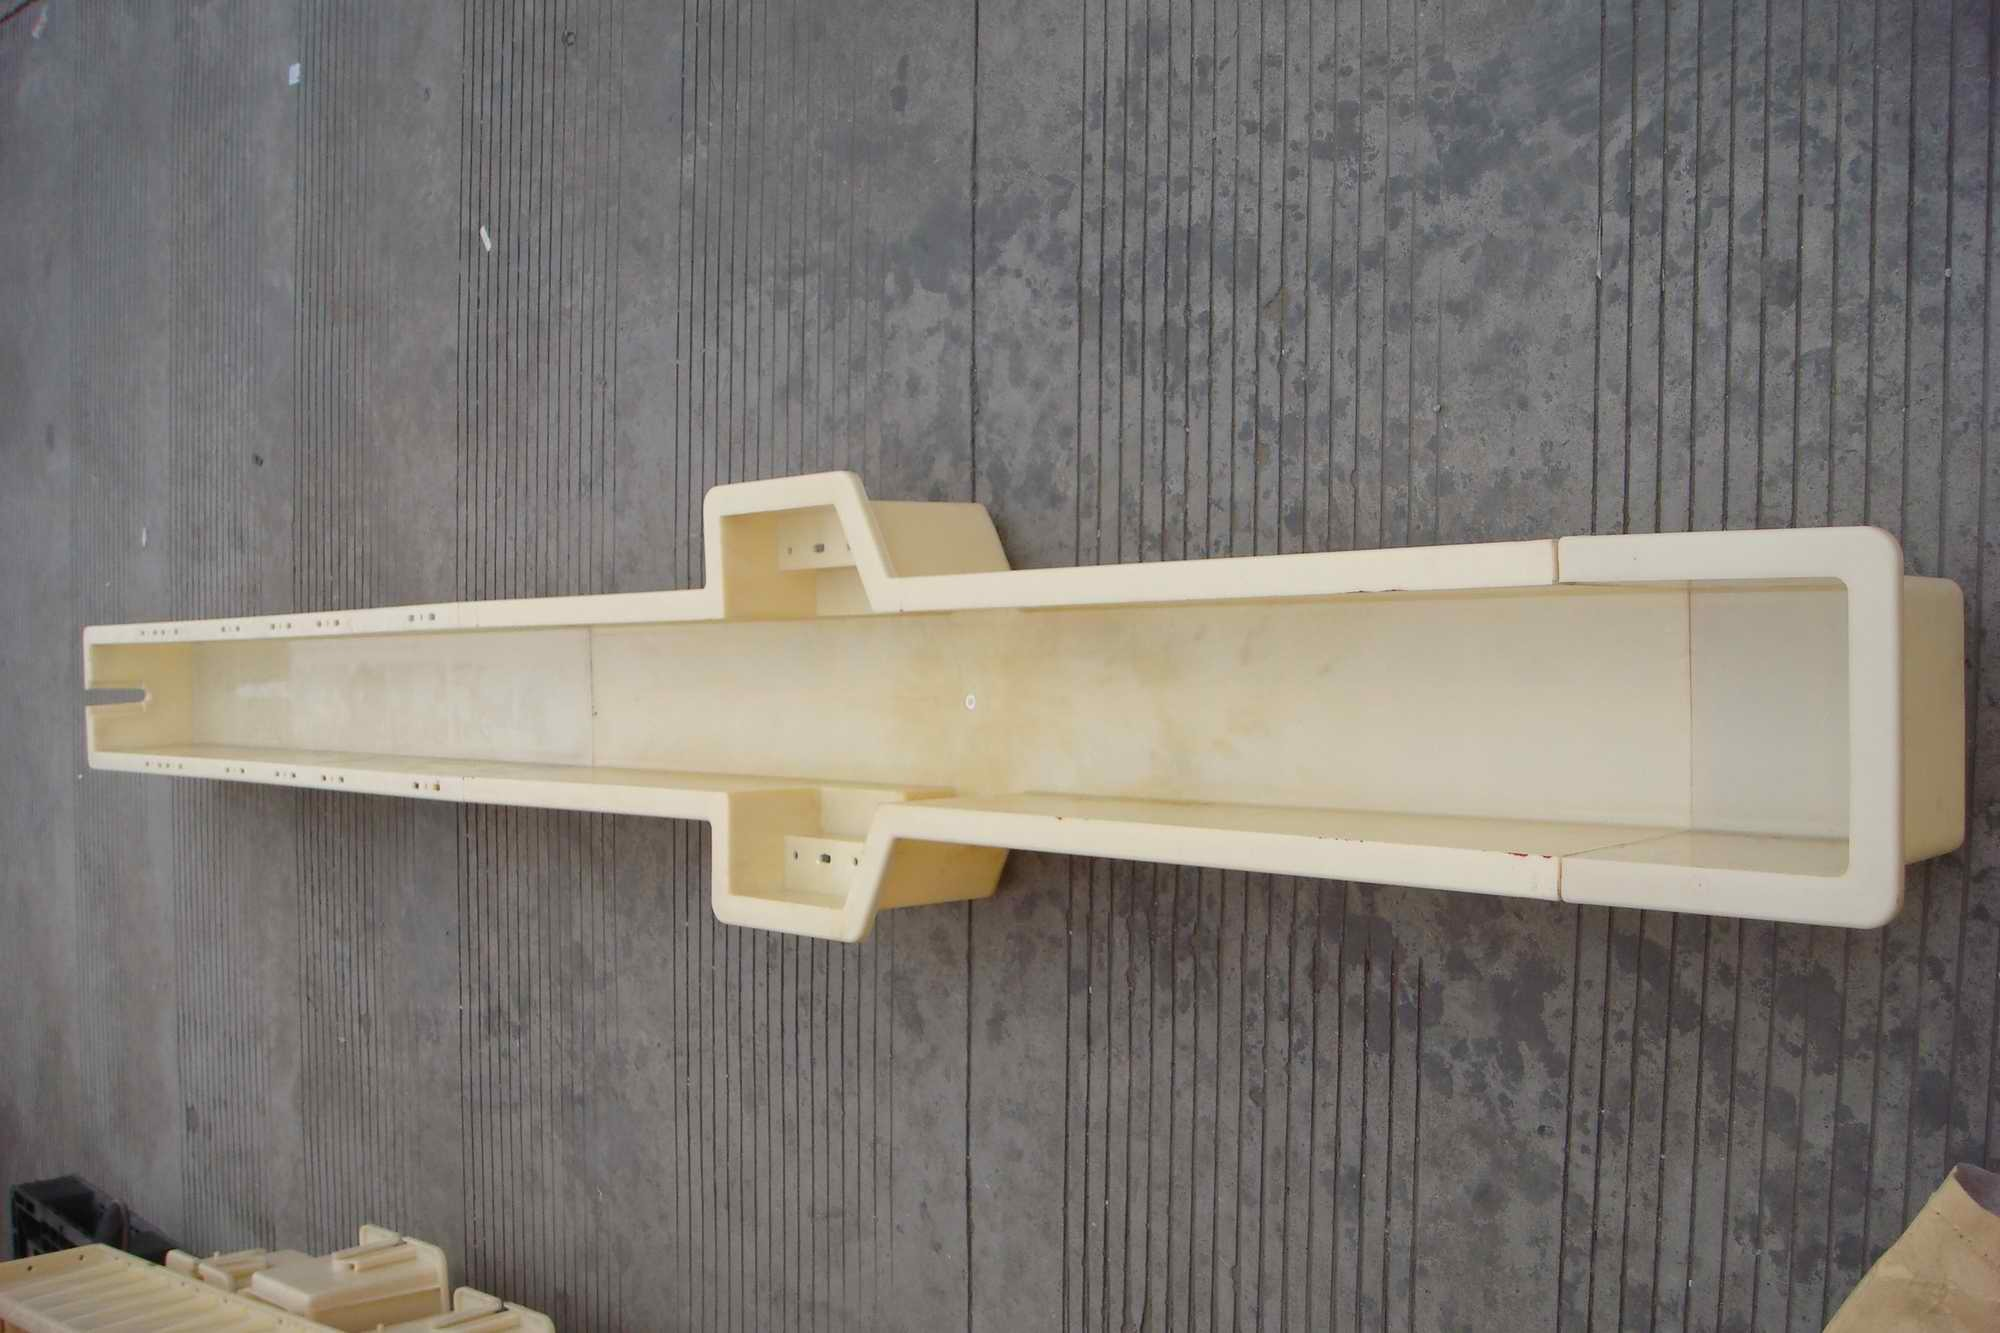 Used Cars For Sale In Tyler Tx China Cement Fence Mold - China Plastic Mould, Concrete Mould